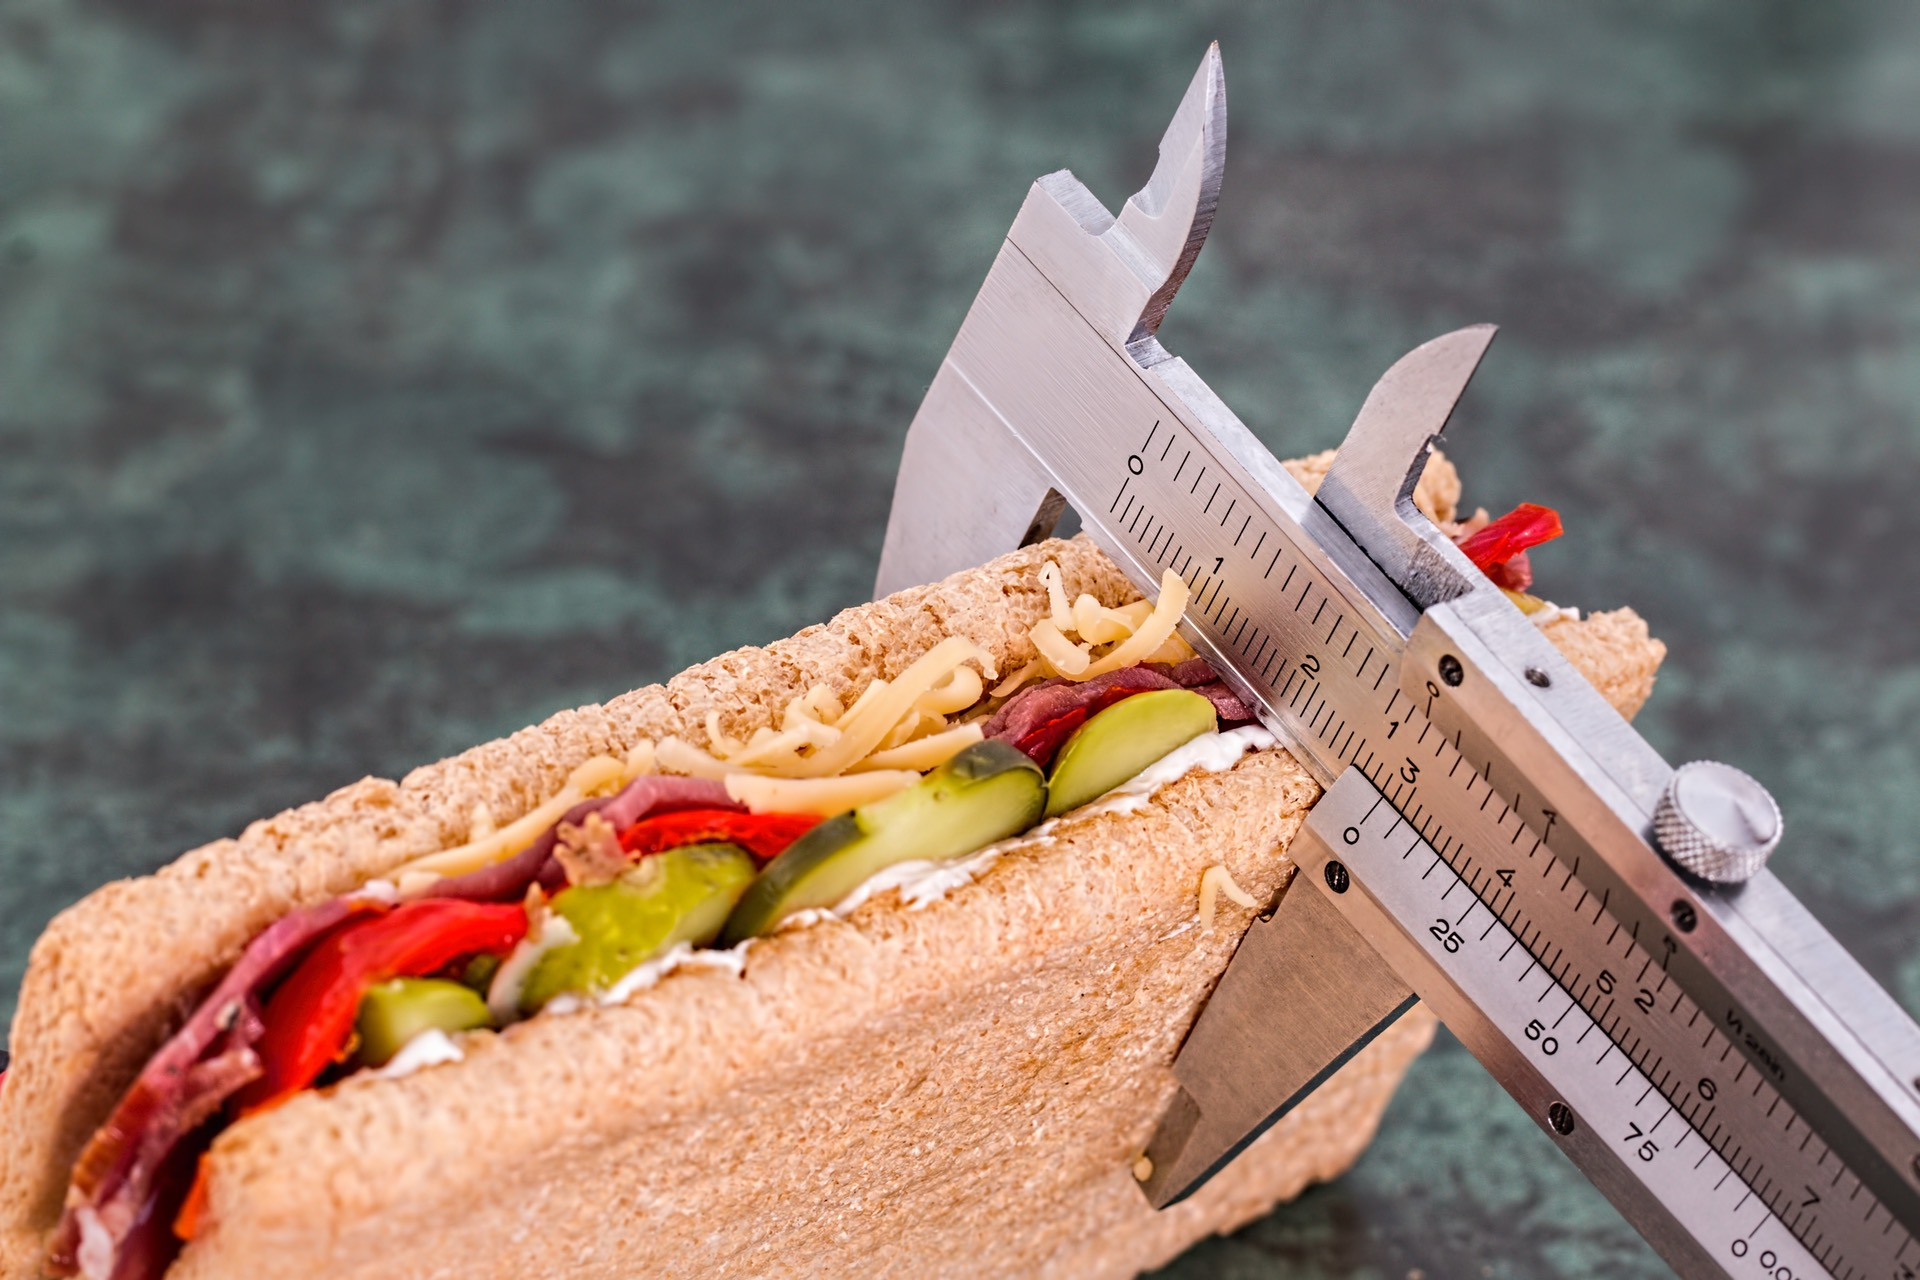 Fasting every other day could be as effective as calorie counting, a study has found